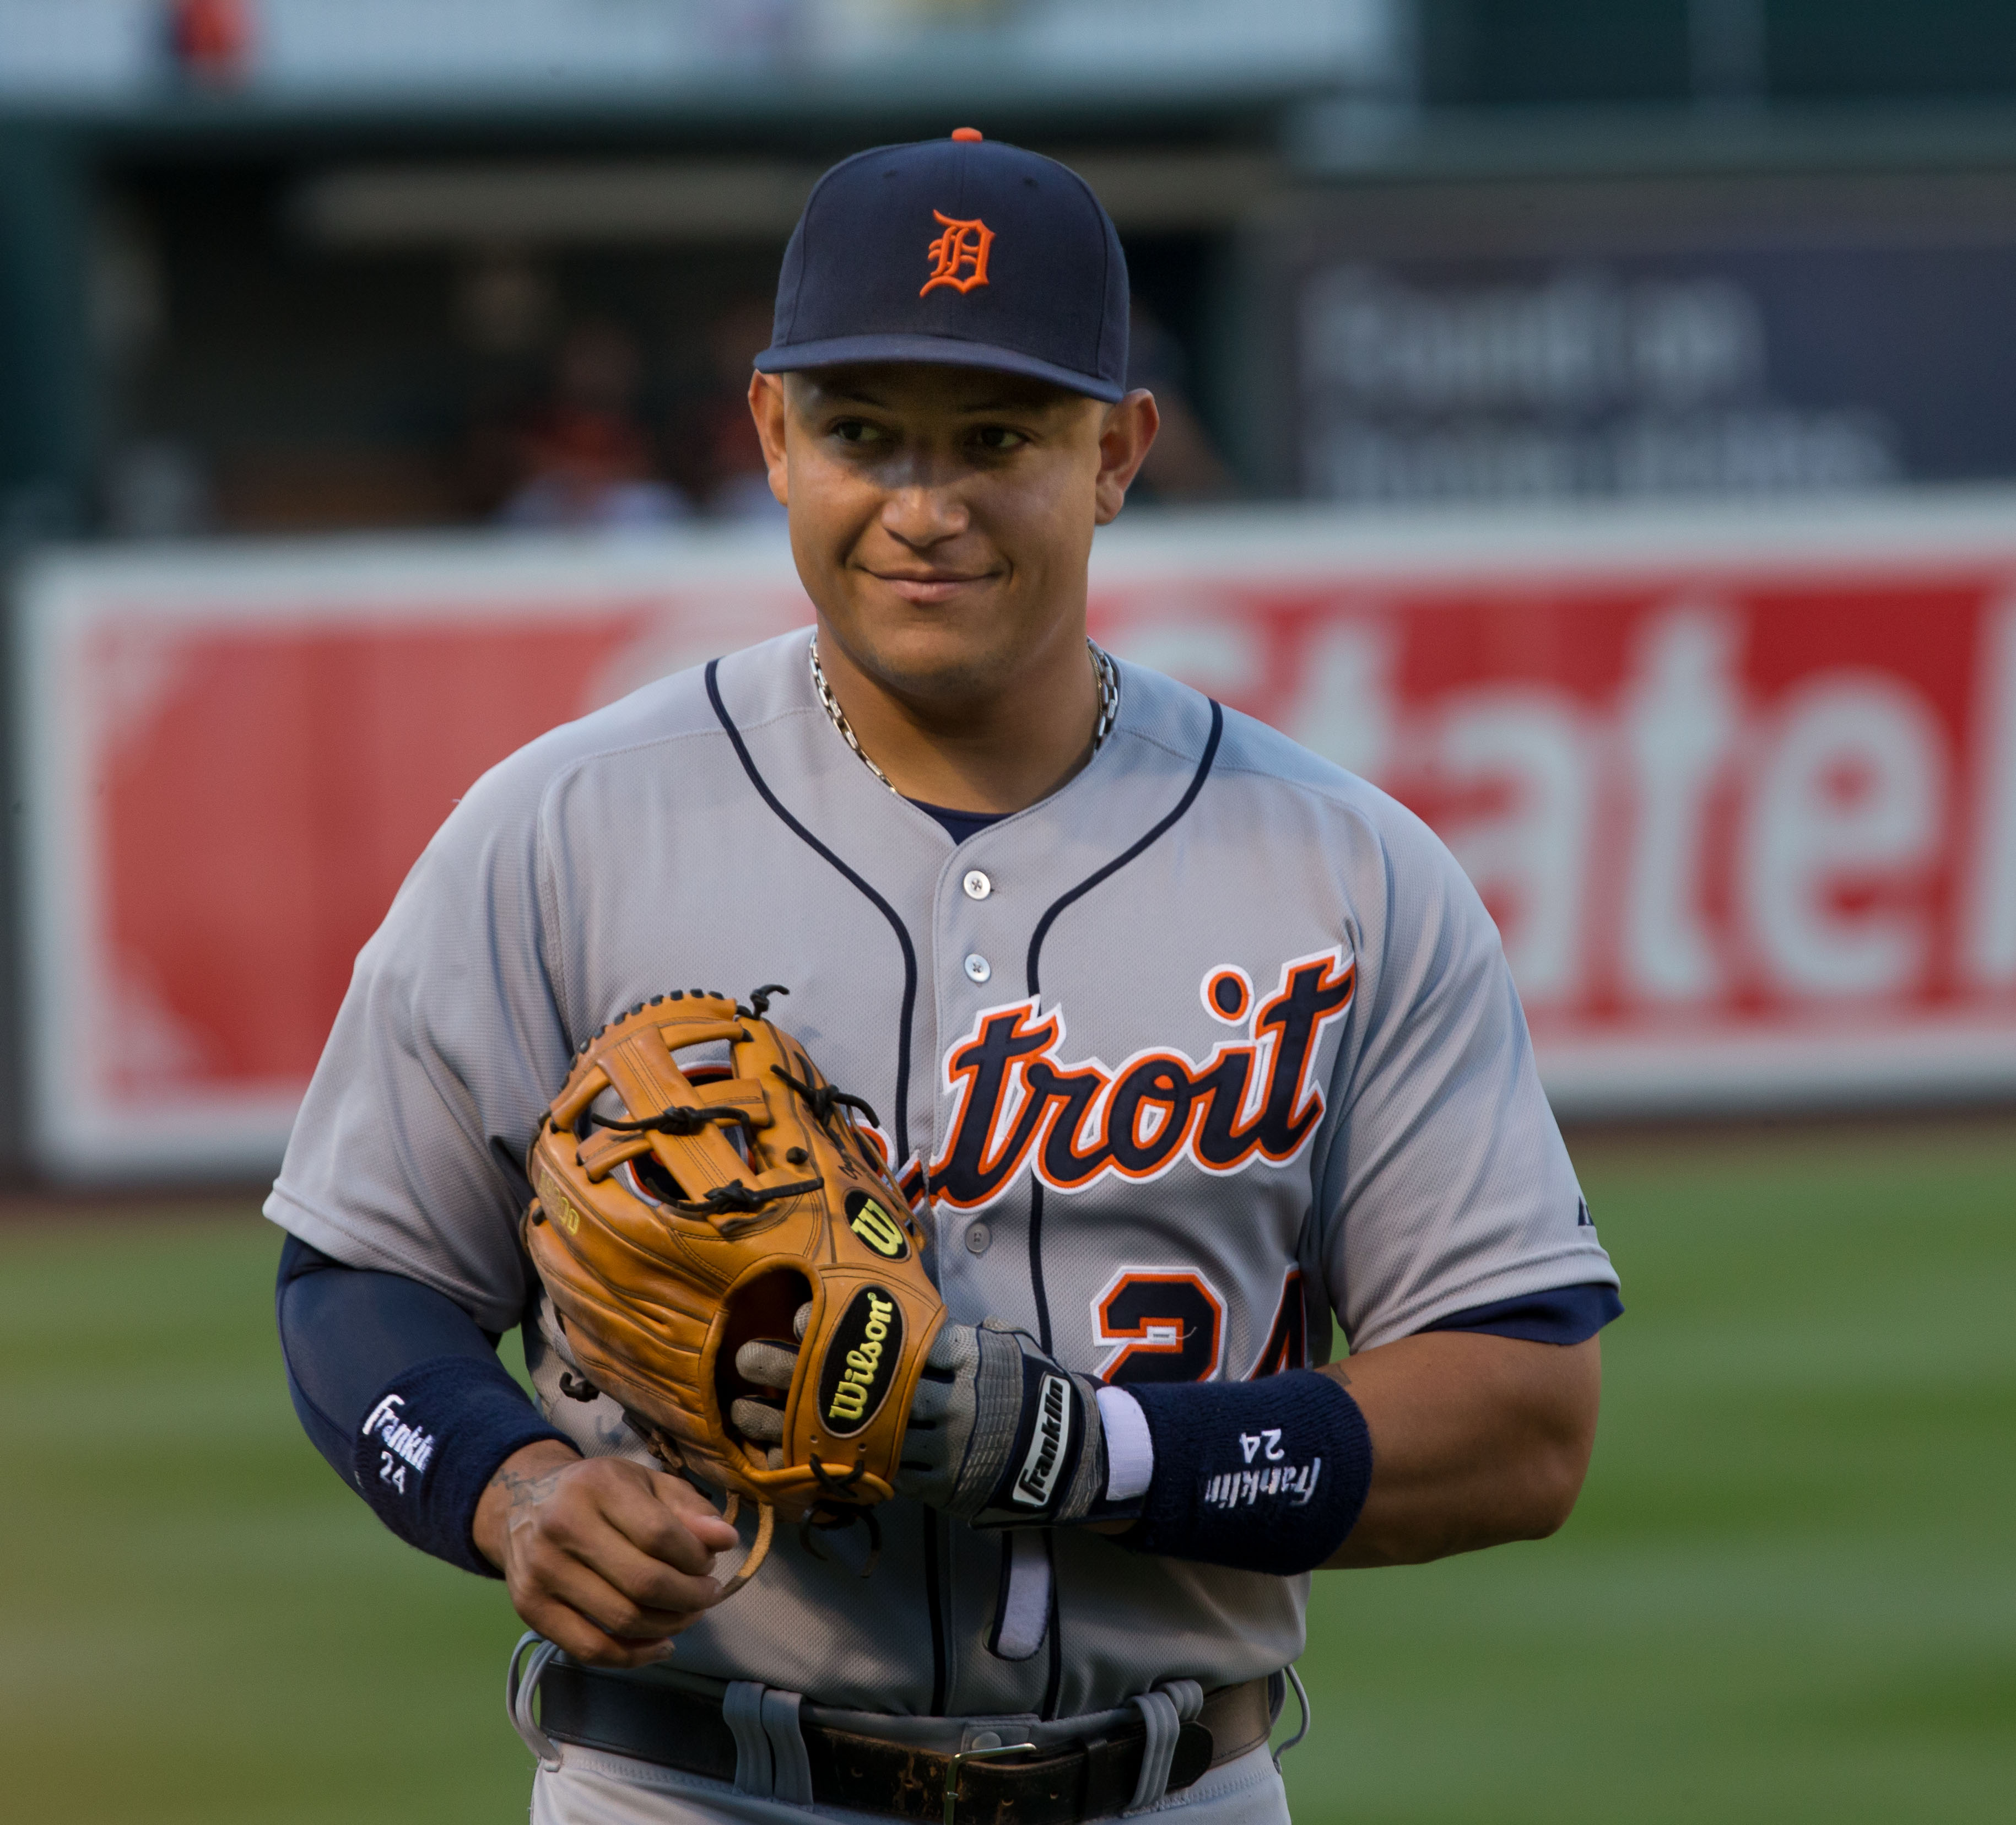 Miguel Cabrera - Address, Phone Number, Public Records ...